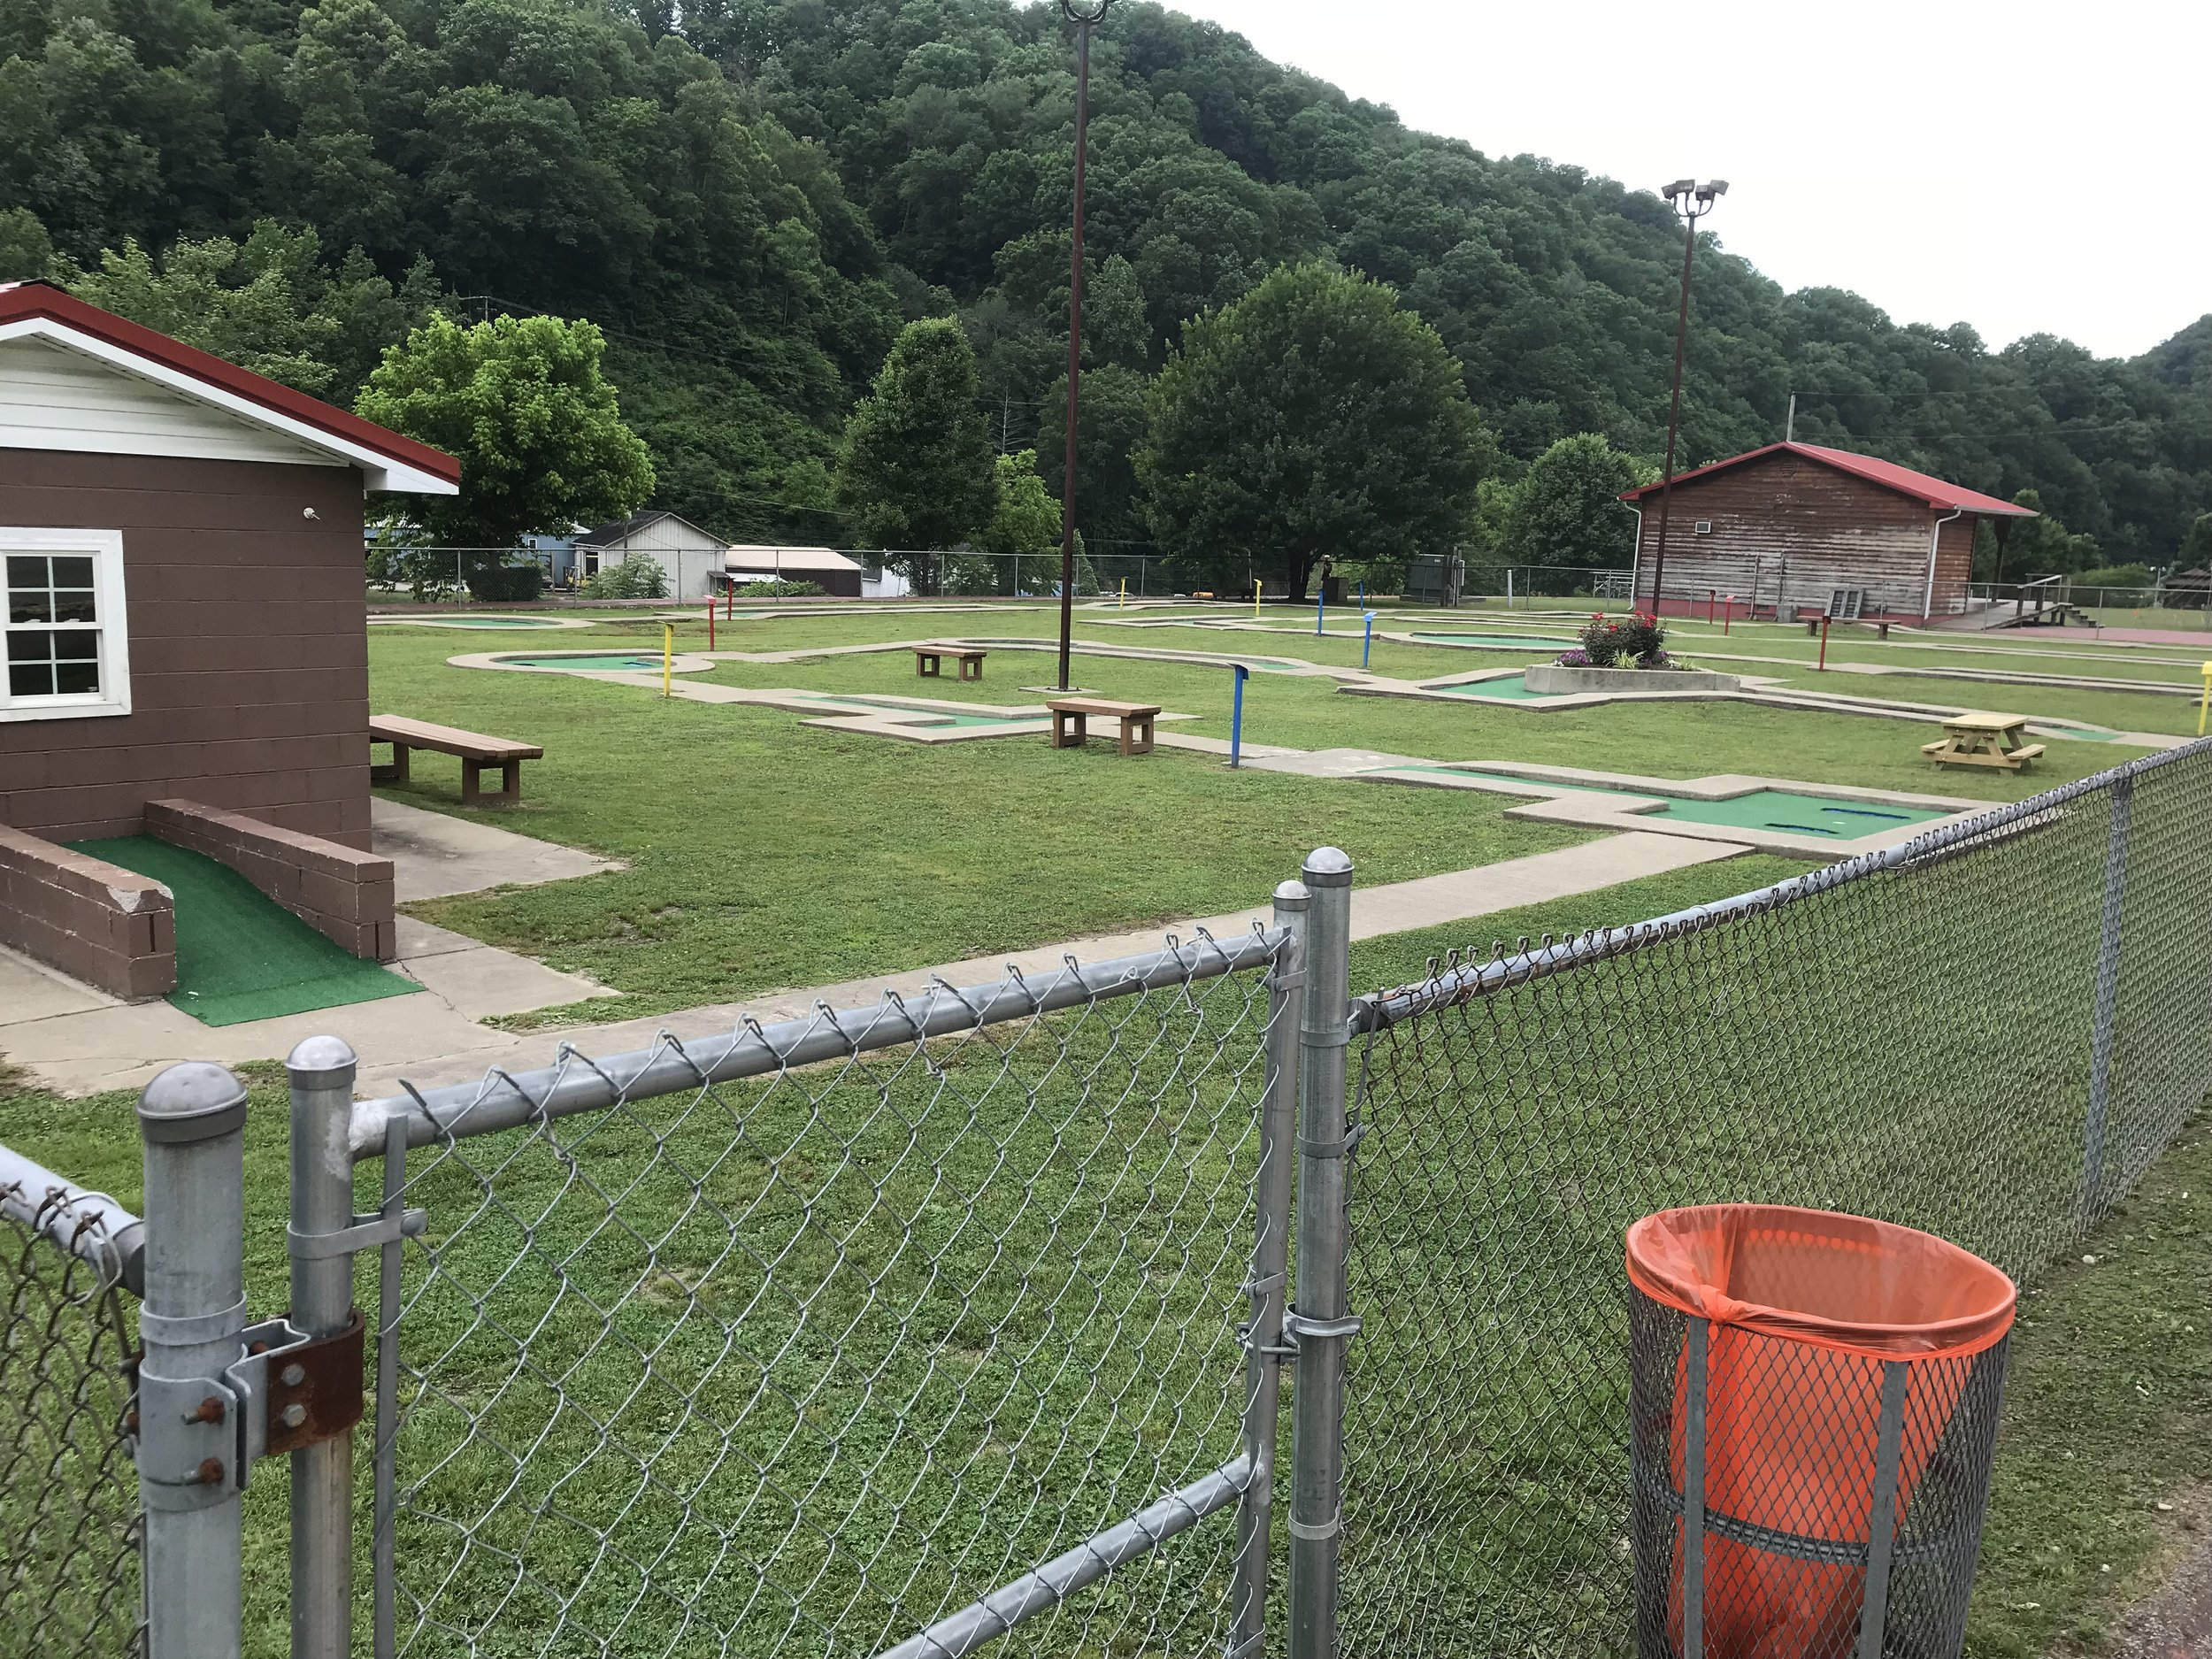 Here is the free mini-golf next to the playground.